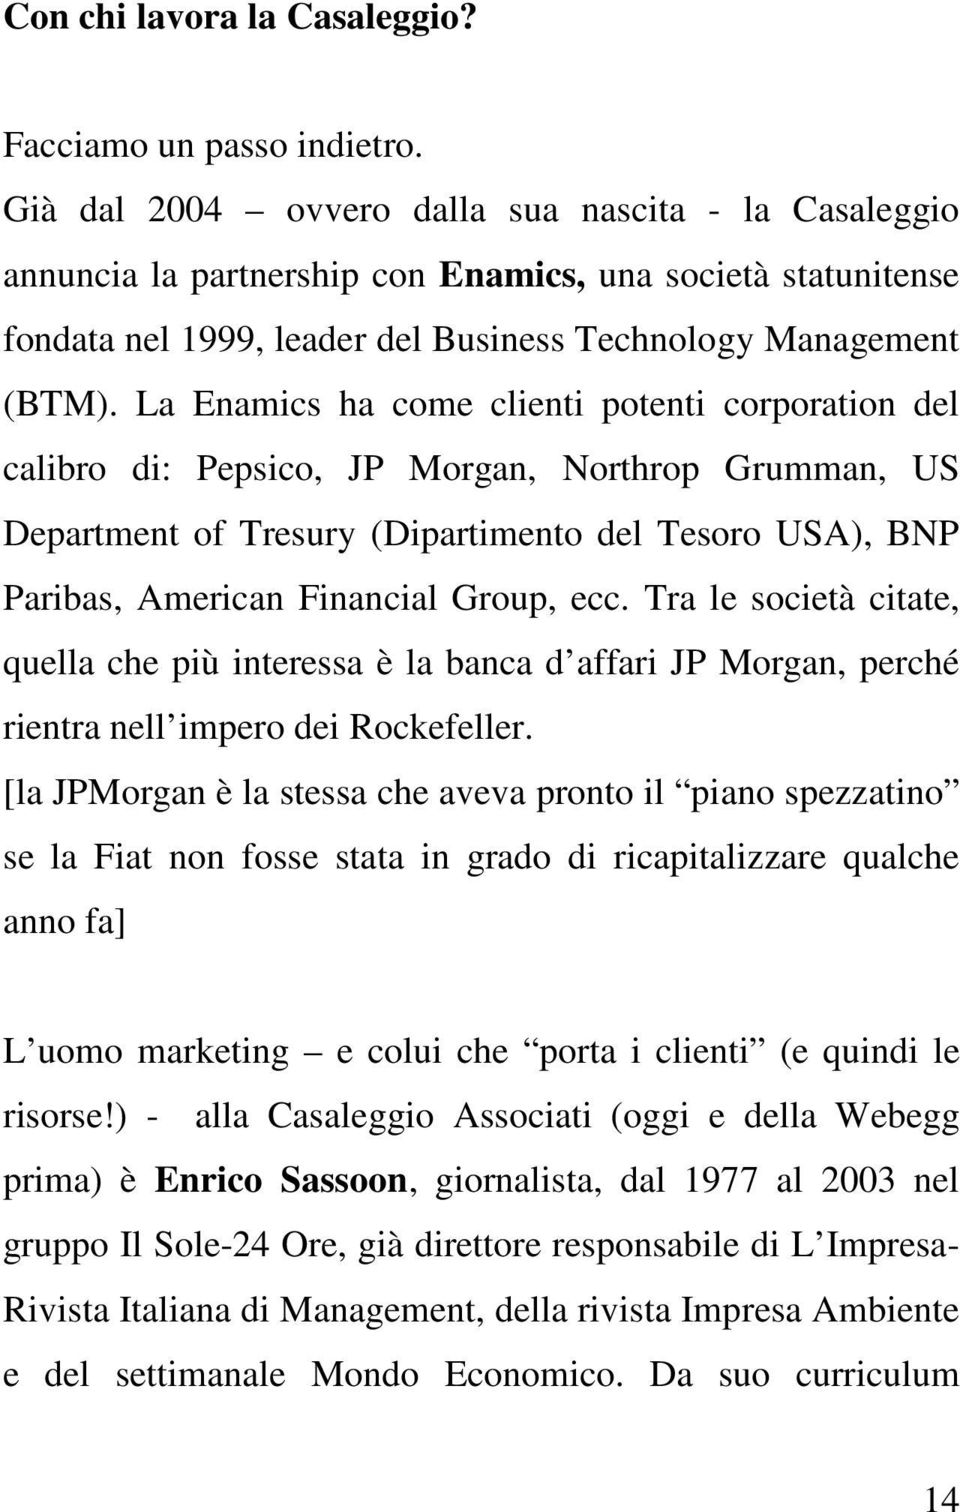 La Enamics ha come clienti potenti corporation del calibro di: Pepsico, JP Morgan, Northrop Grumman, US Department of Tresury (Dipartimento del Tesoro USA), BNP Paribas, American Financial Group, ecc.